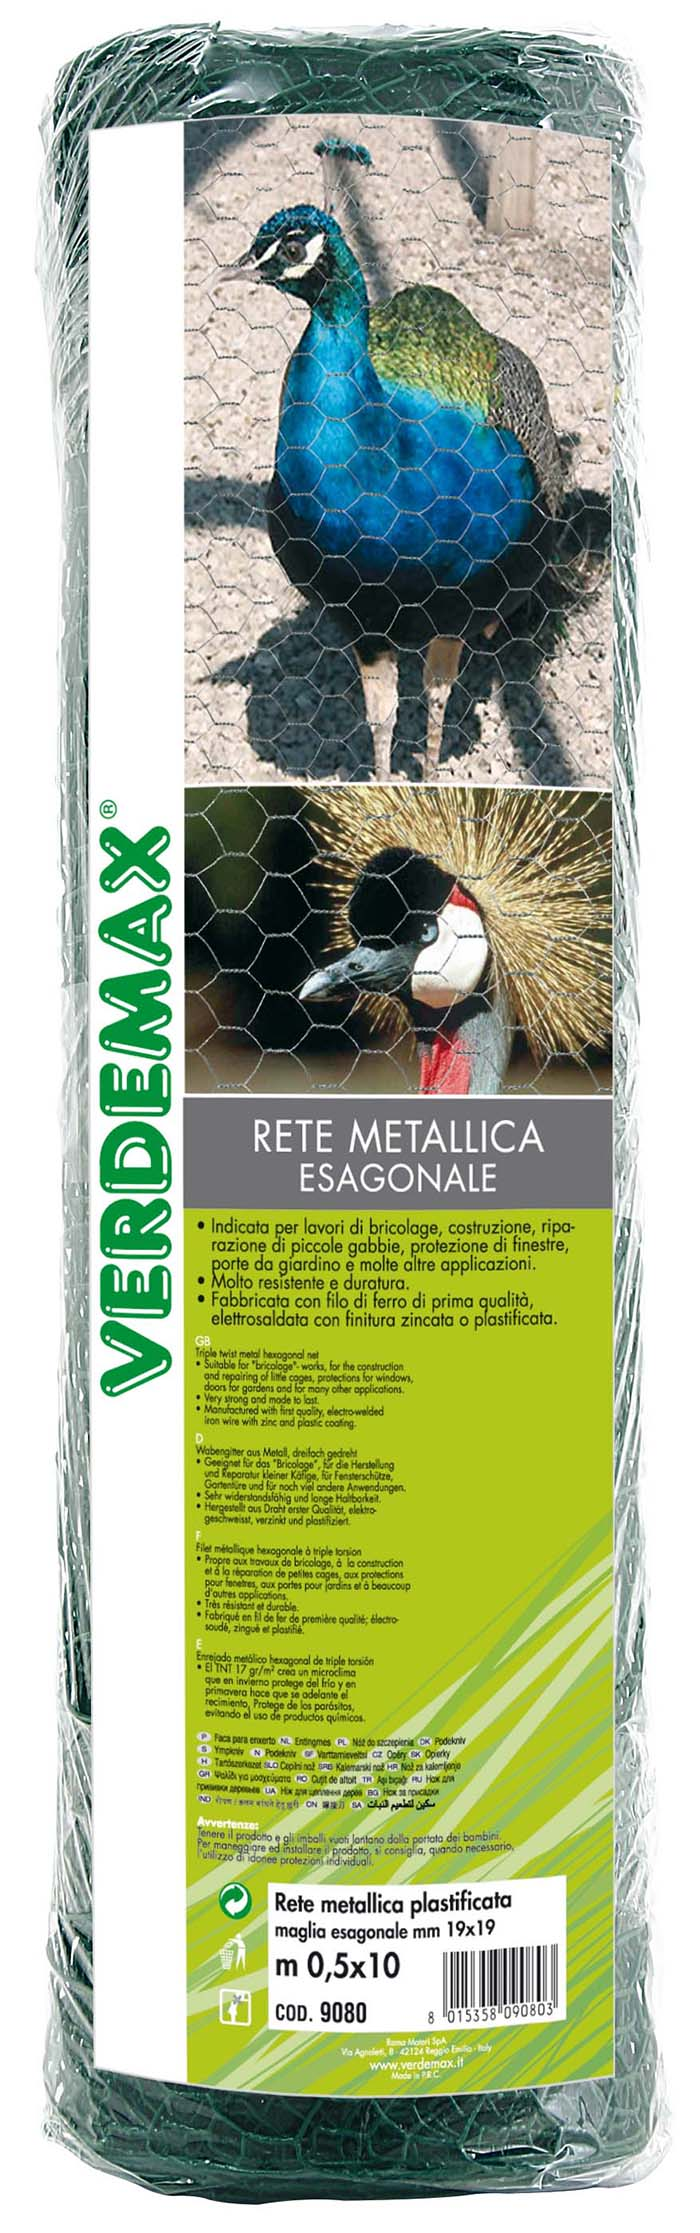 VERDEMAX METAL HEXAGONAL NET 0.5X10 GRN